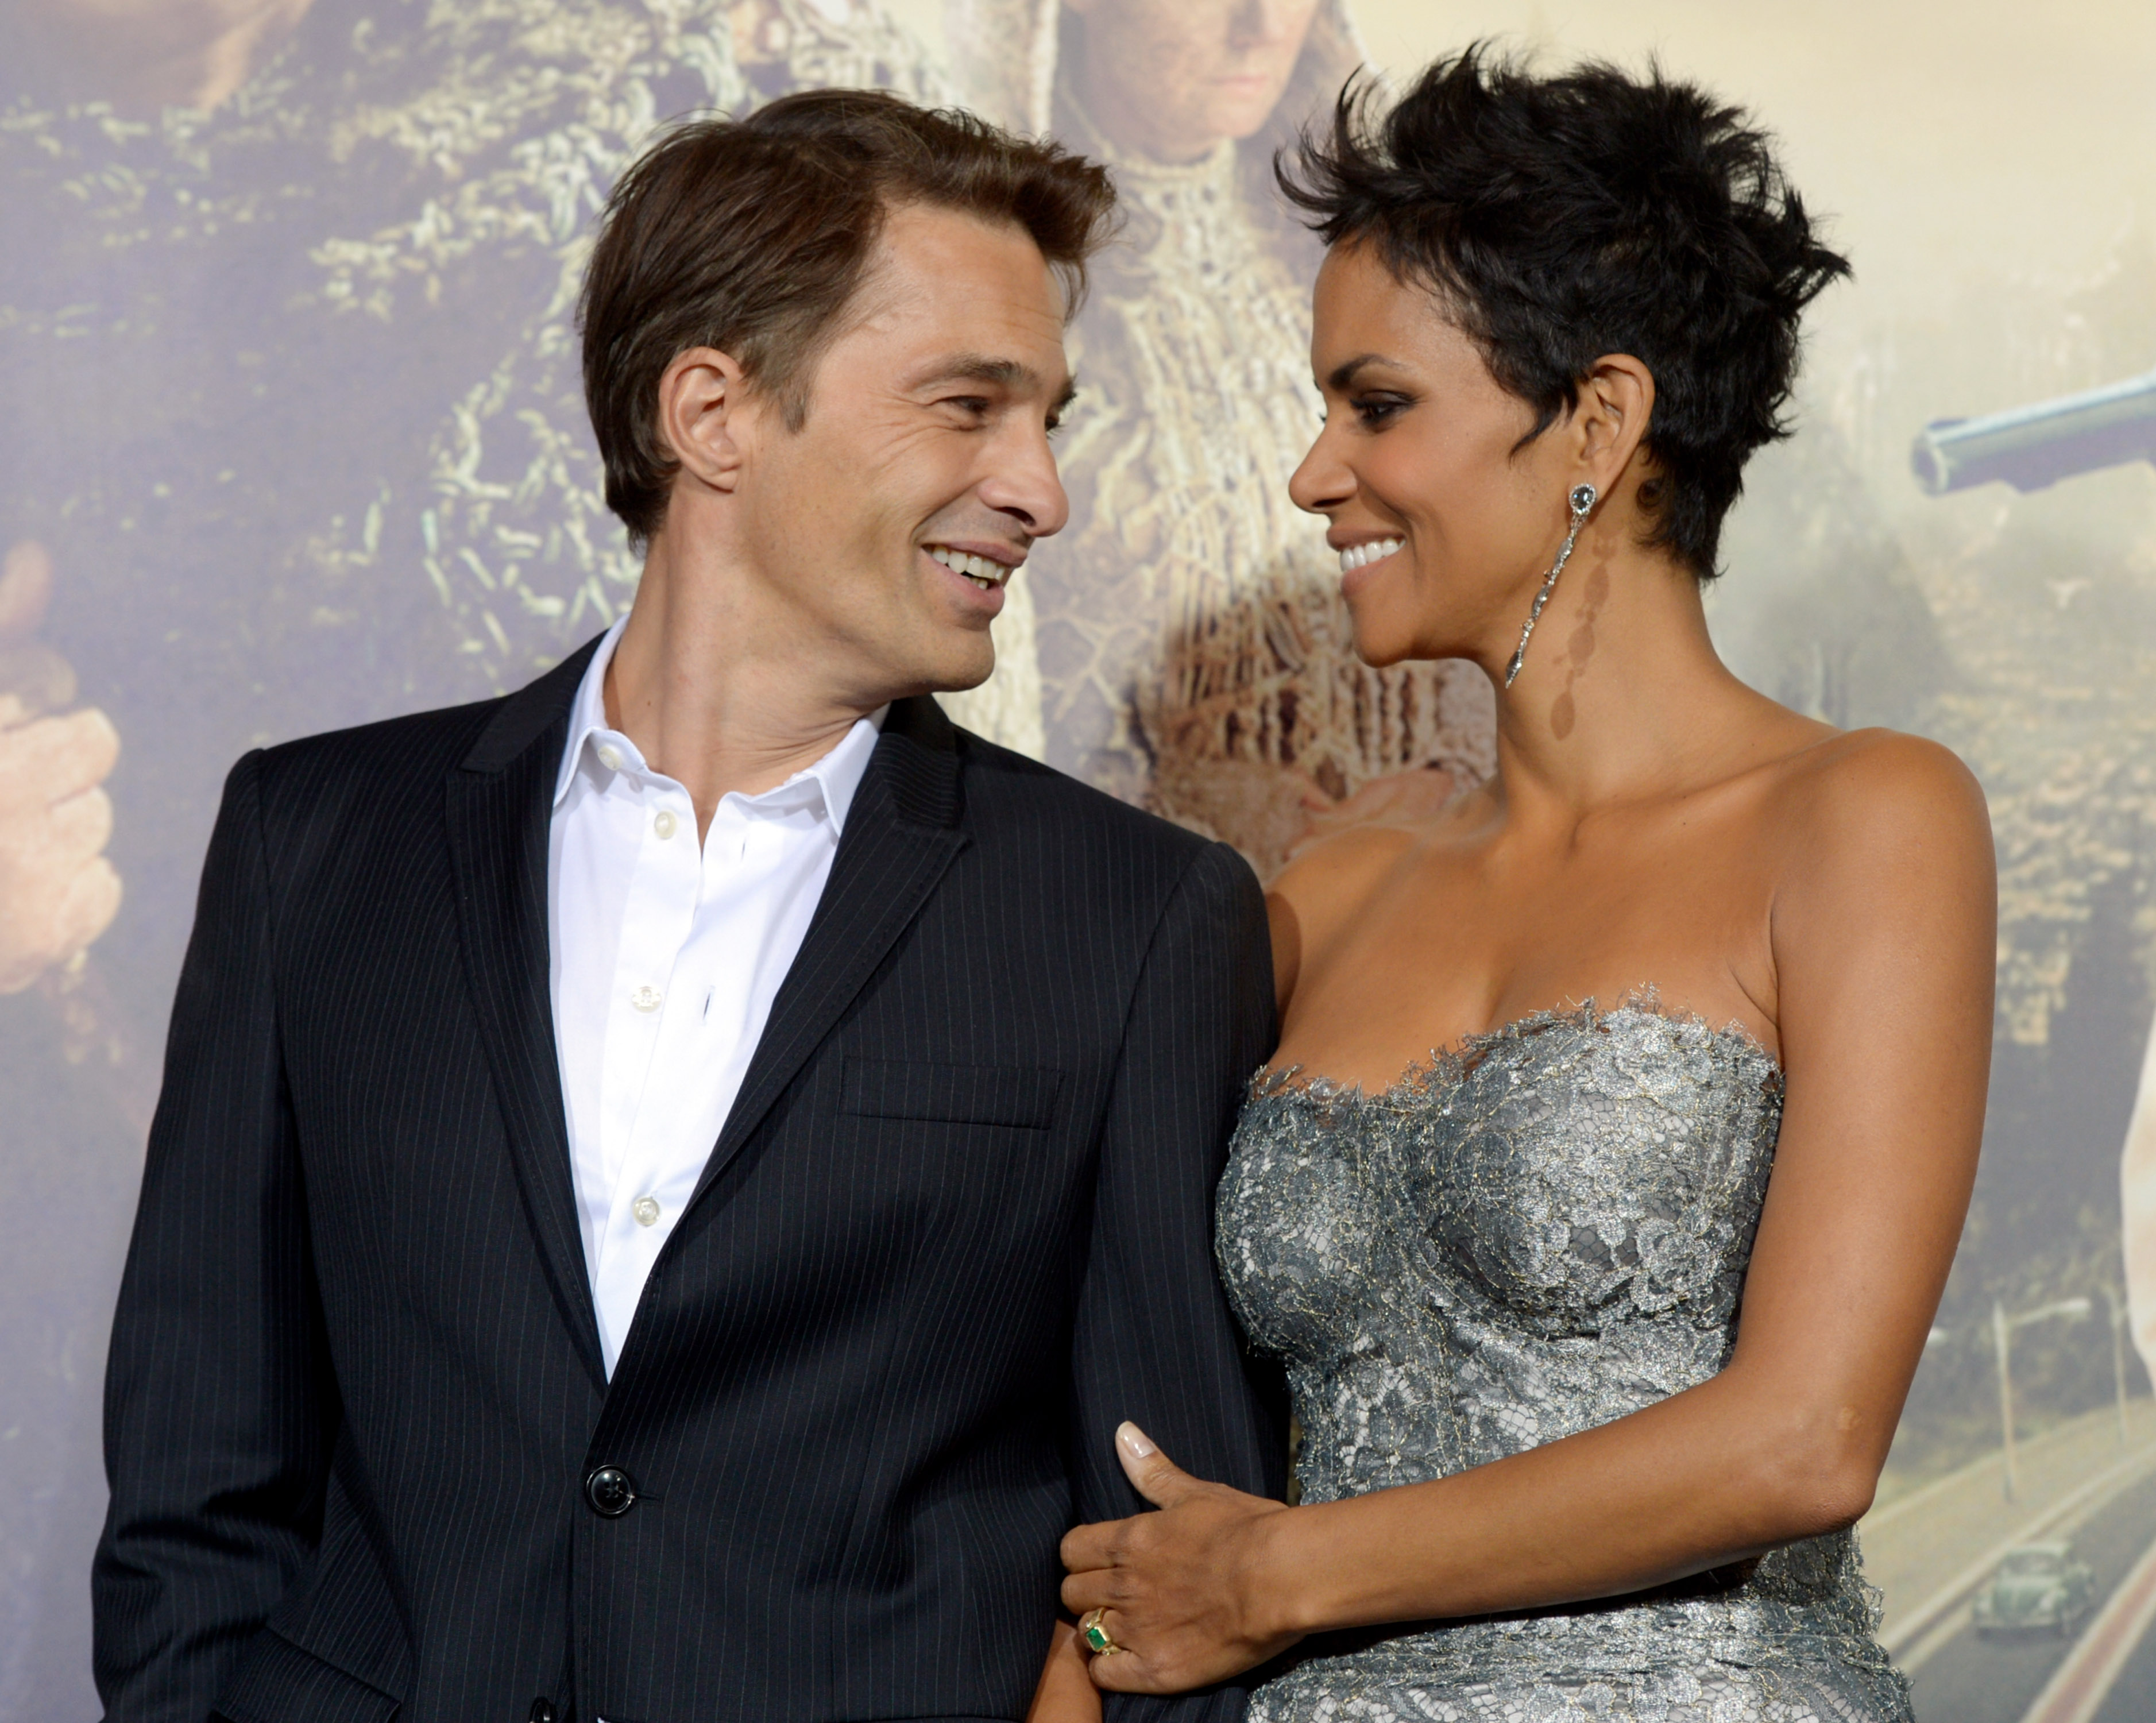 Halle Berry and fiancé Olivier Martinez 'expecting baby boy'